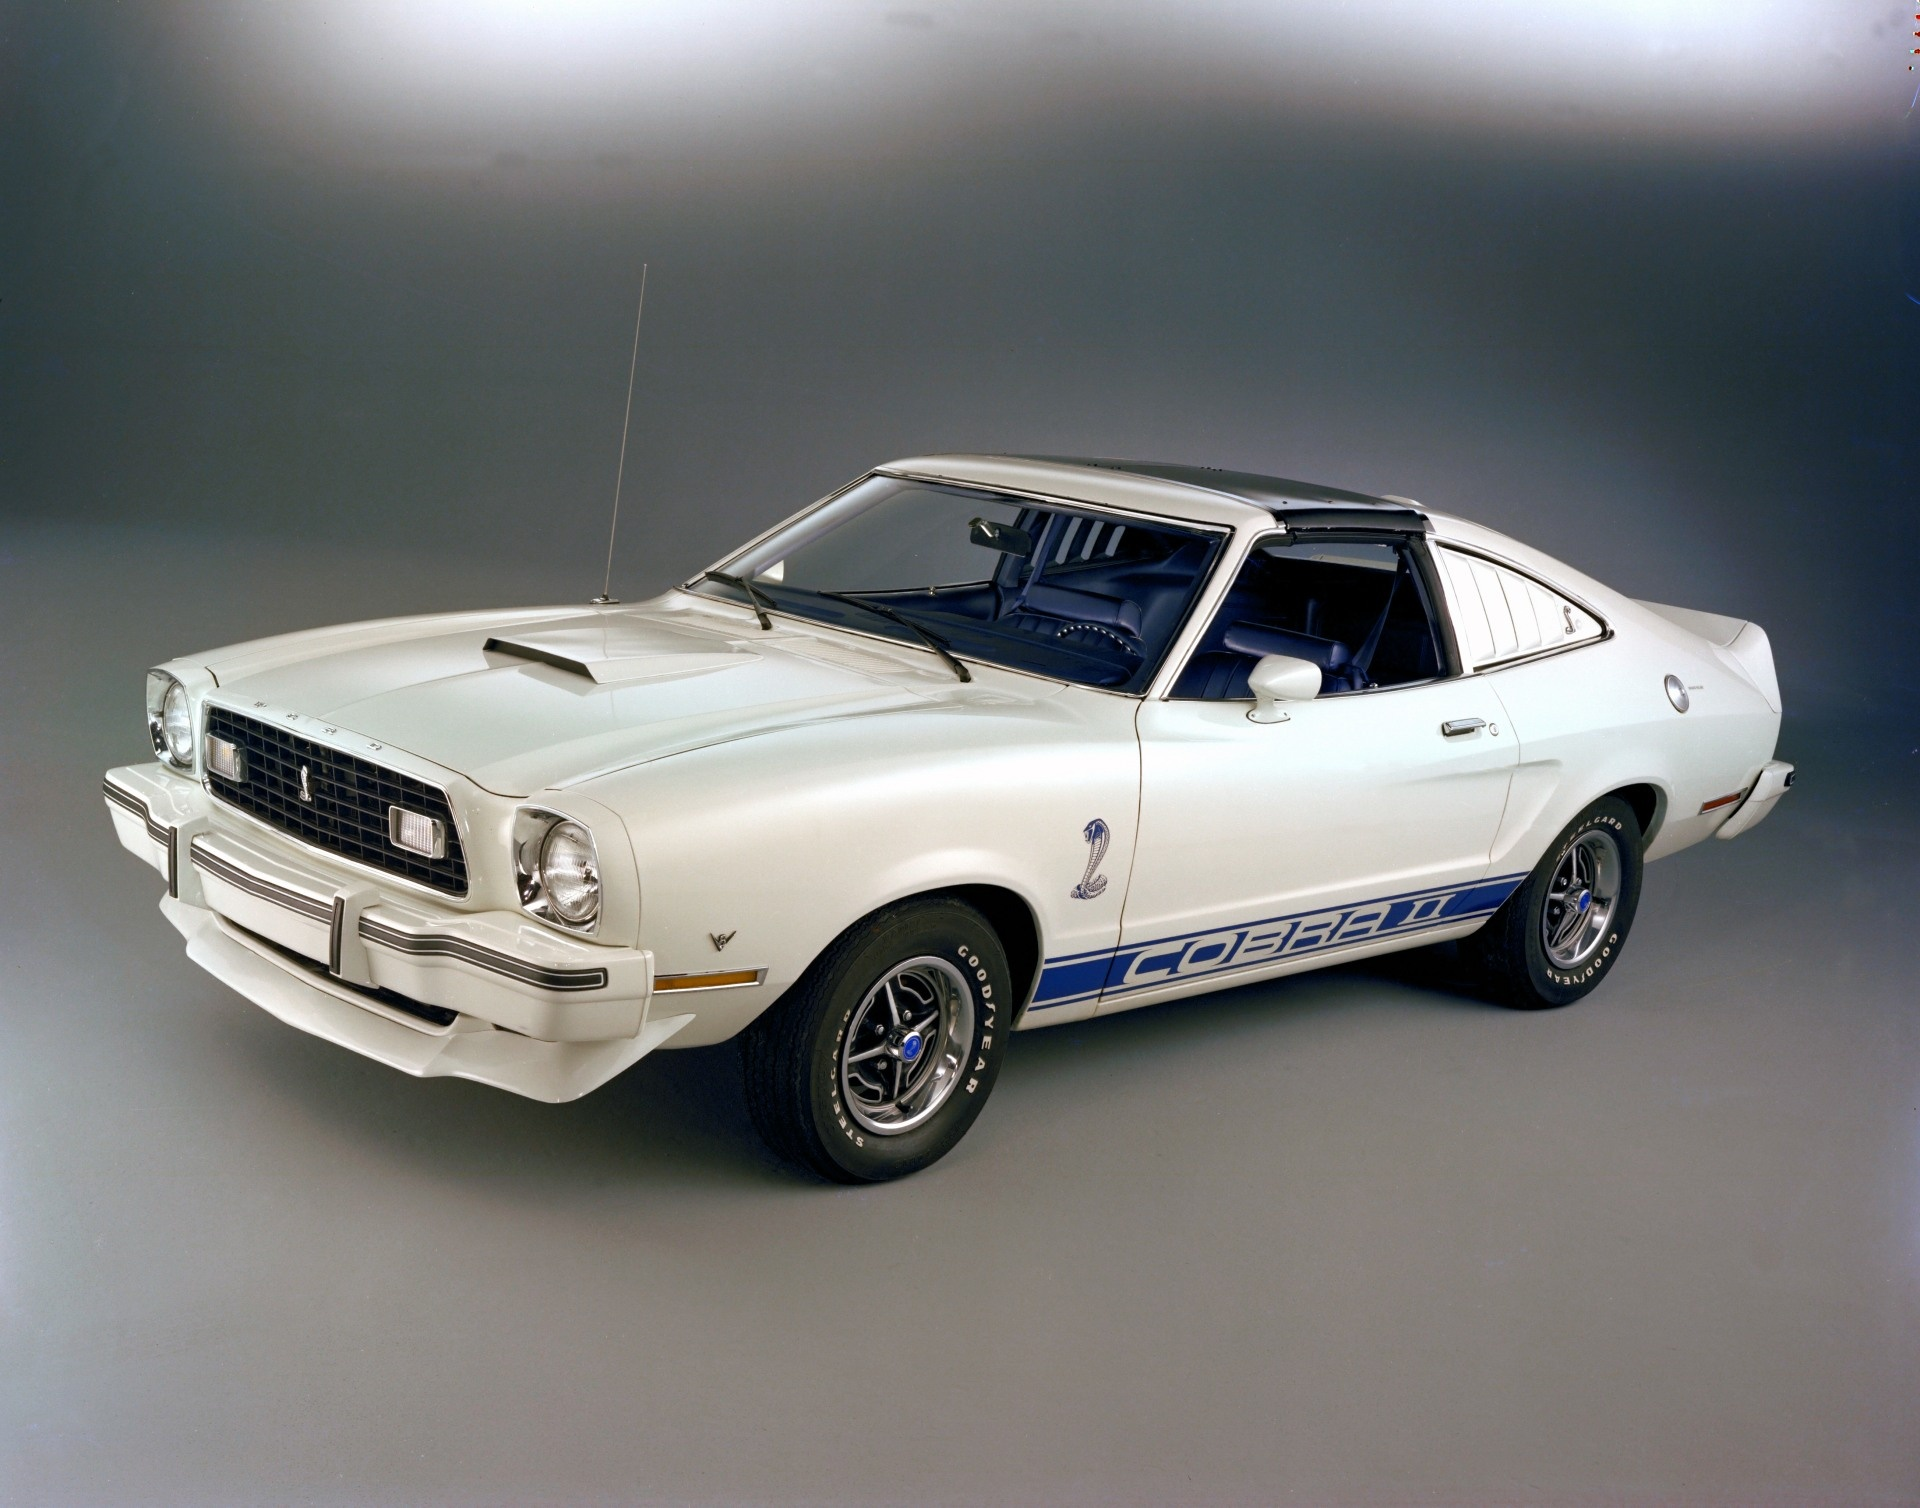 Ford Mustang III Restyling 1986 - 1993 Coupe #1